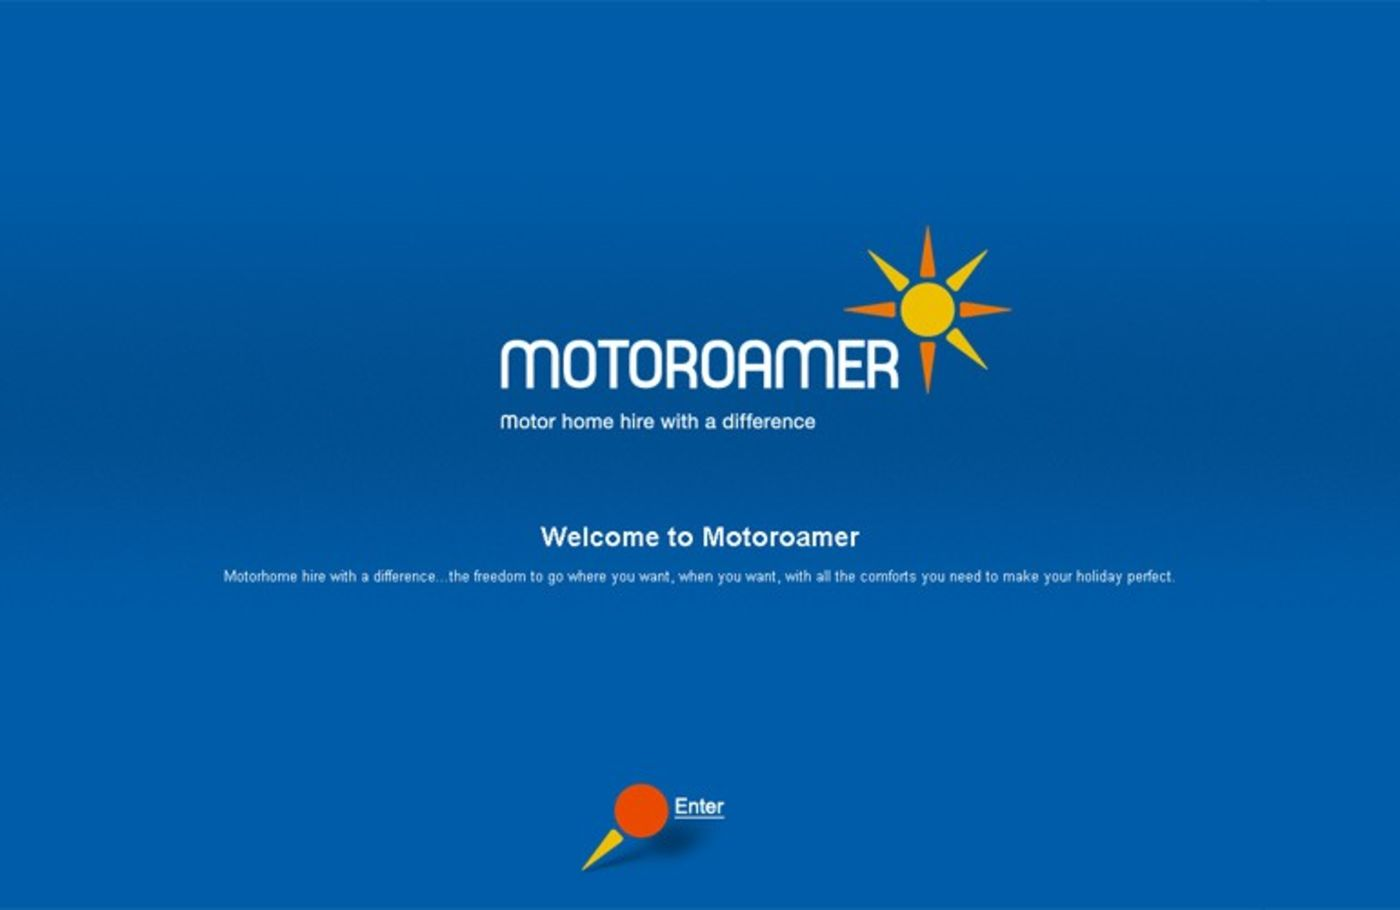 Motoroamer Welcome